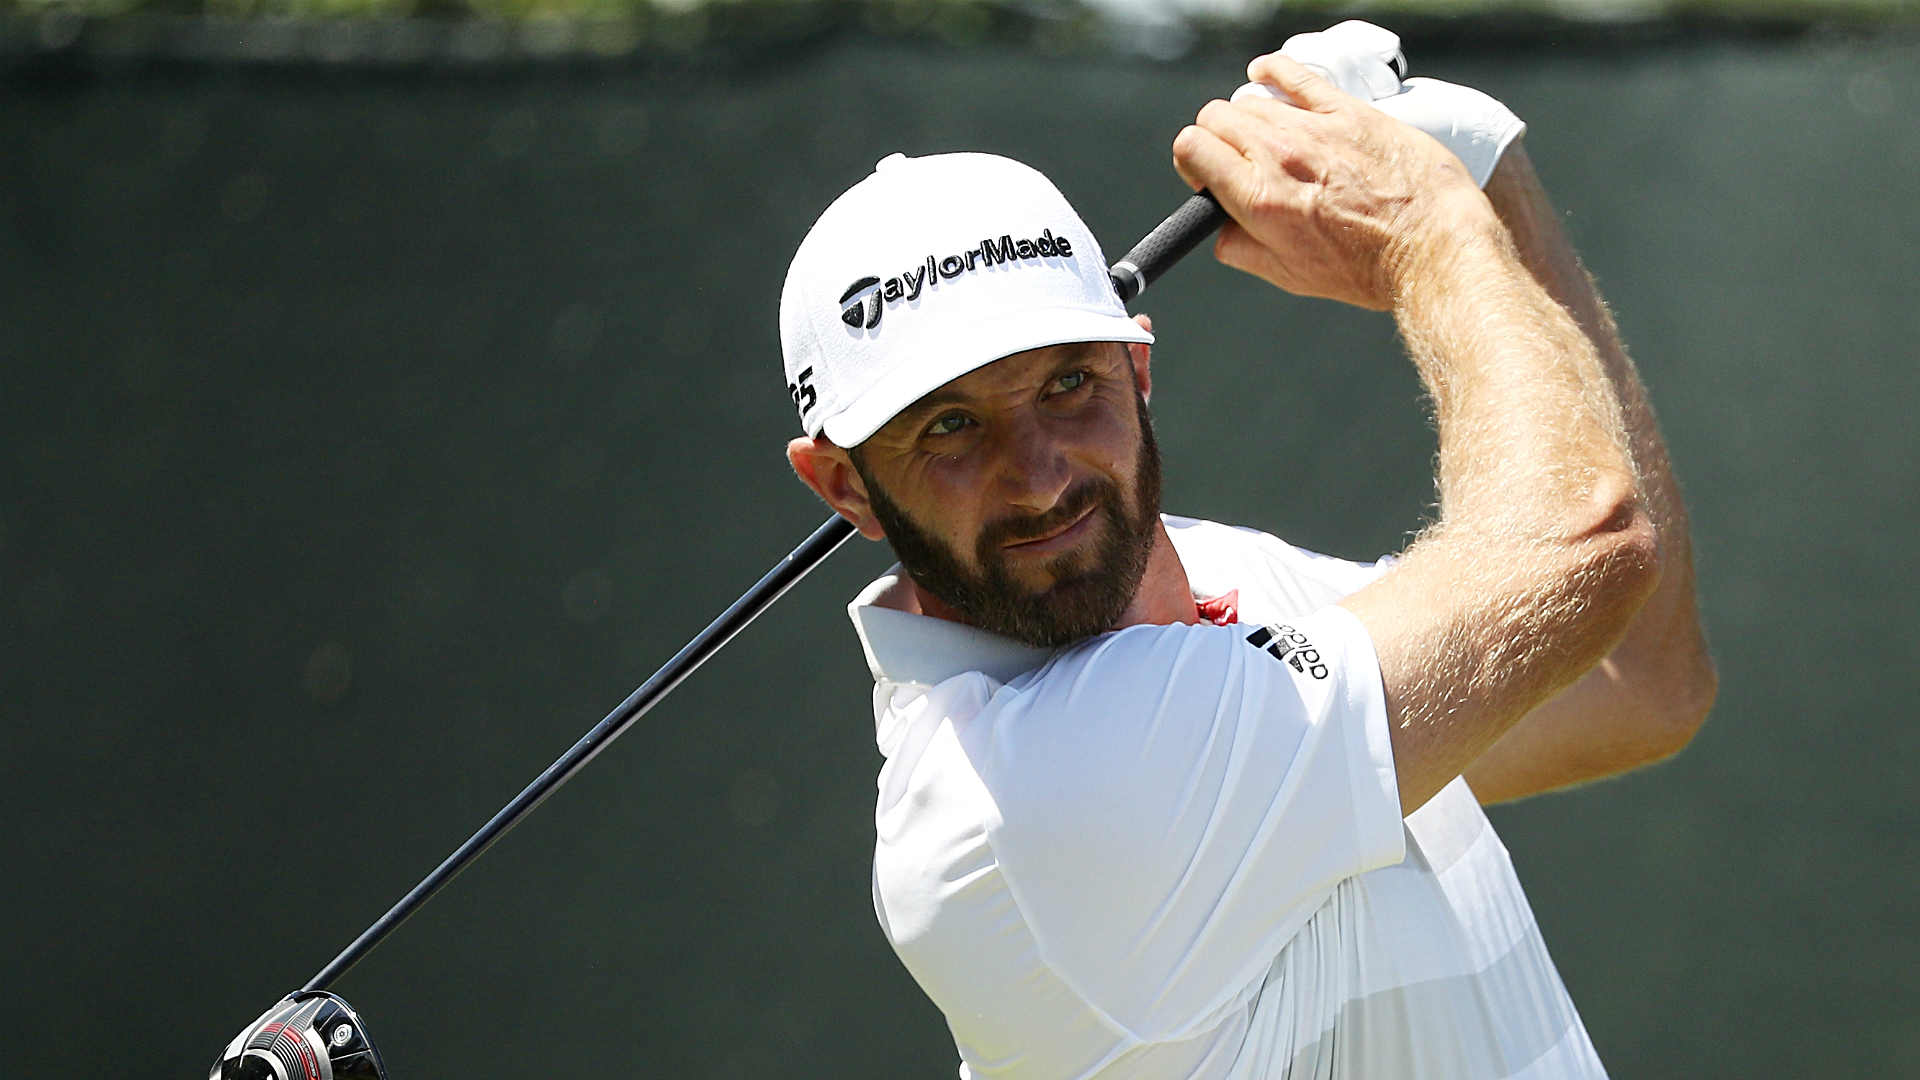 Johnson falters to be in four-way lead in US Open